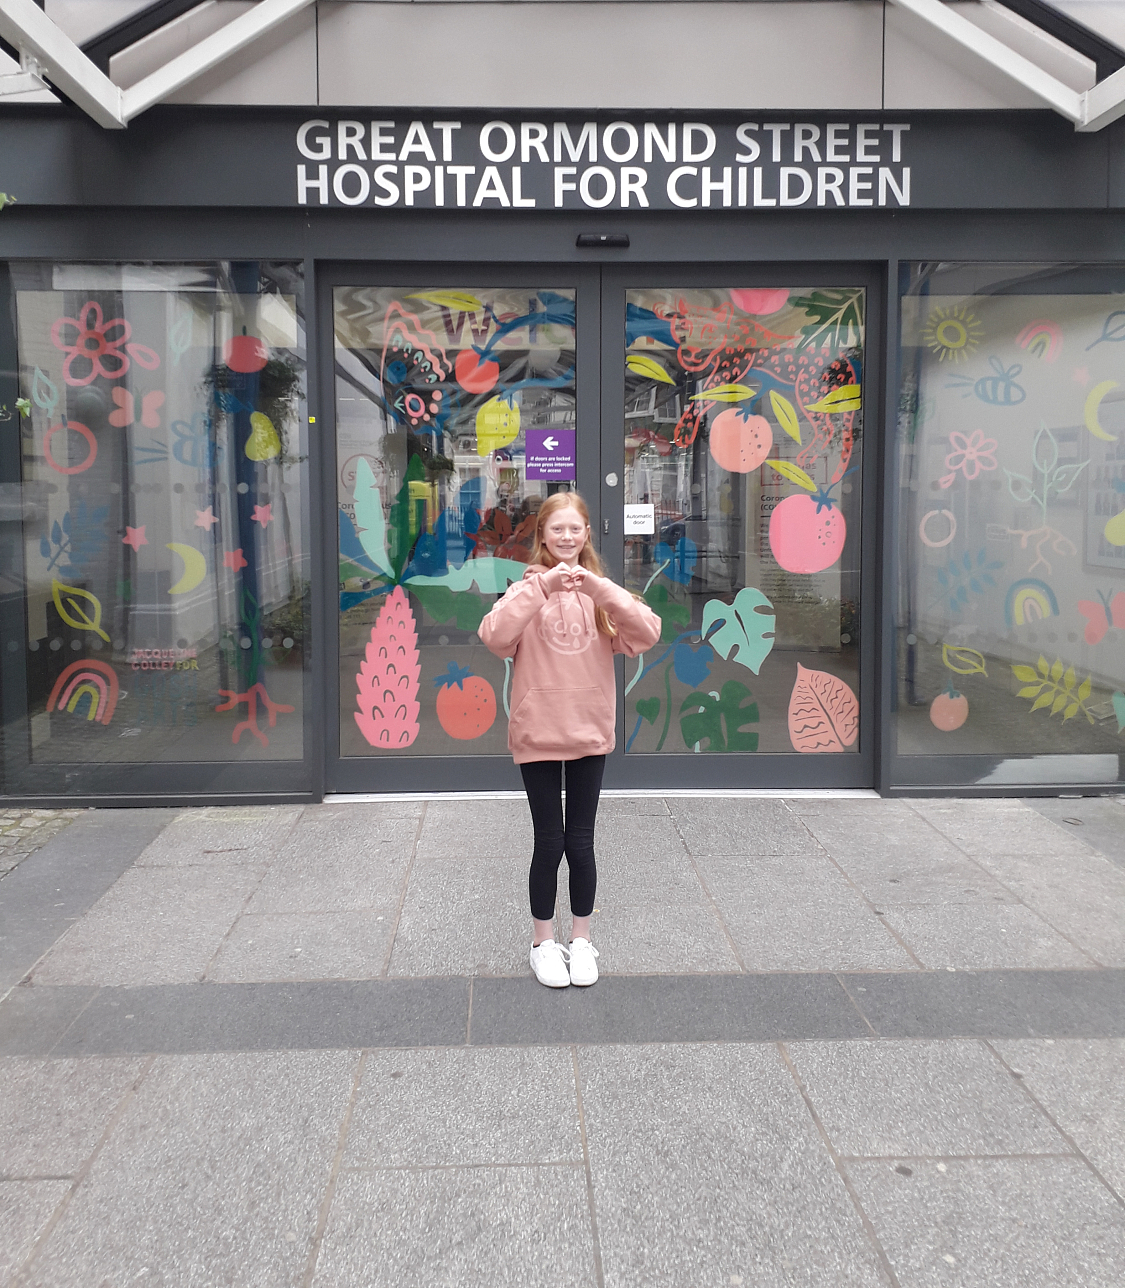 A girl stands outside Great Ormond Street Hospital for Children